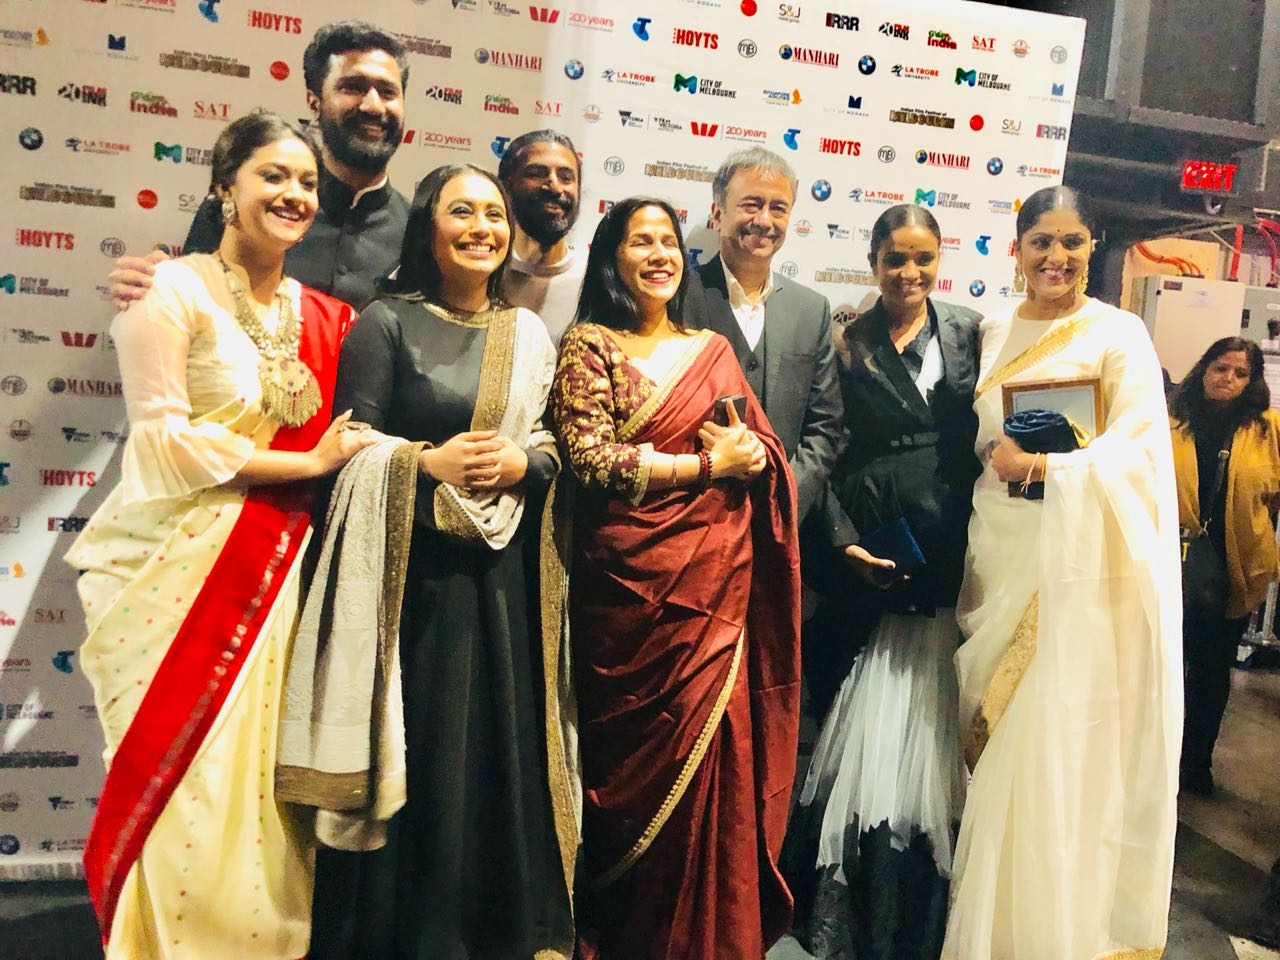 Melbourne: Directors Nag Ashwin and Rajkumar Hirani, actors Rani Mukerji, Farhan Akhtar and Keerthy Suresh, producers Swapna Dutt and Priyanka Dutt at the Indian Film Festival of Melbourne (IFFM) in Melbourne. (Photo: IANS) by .